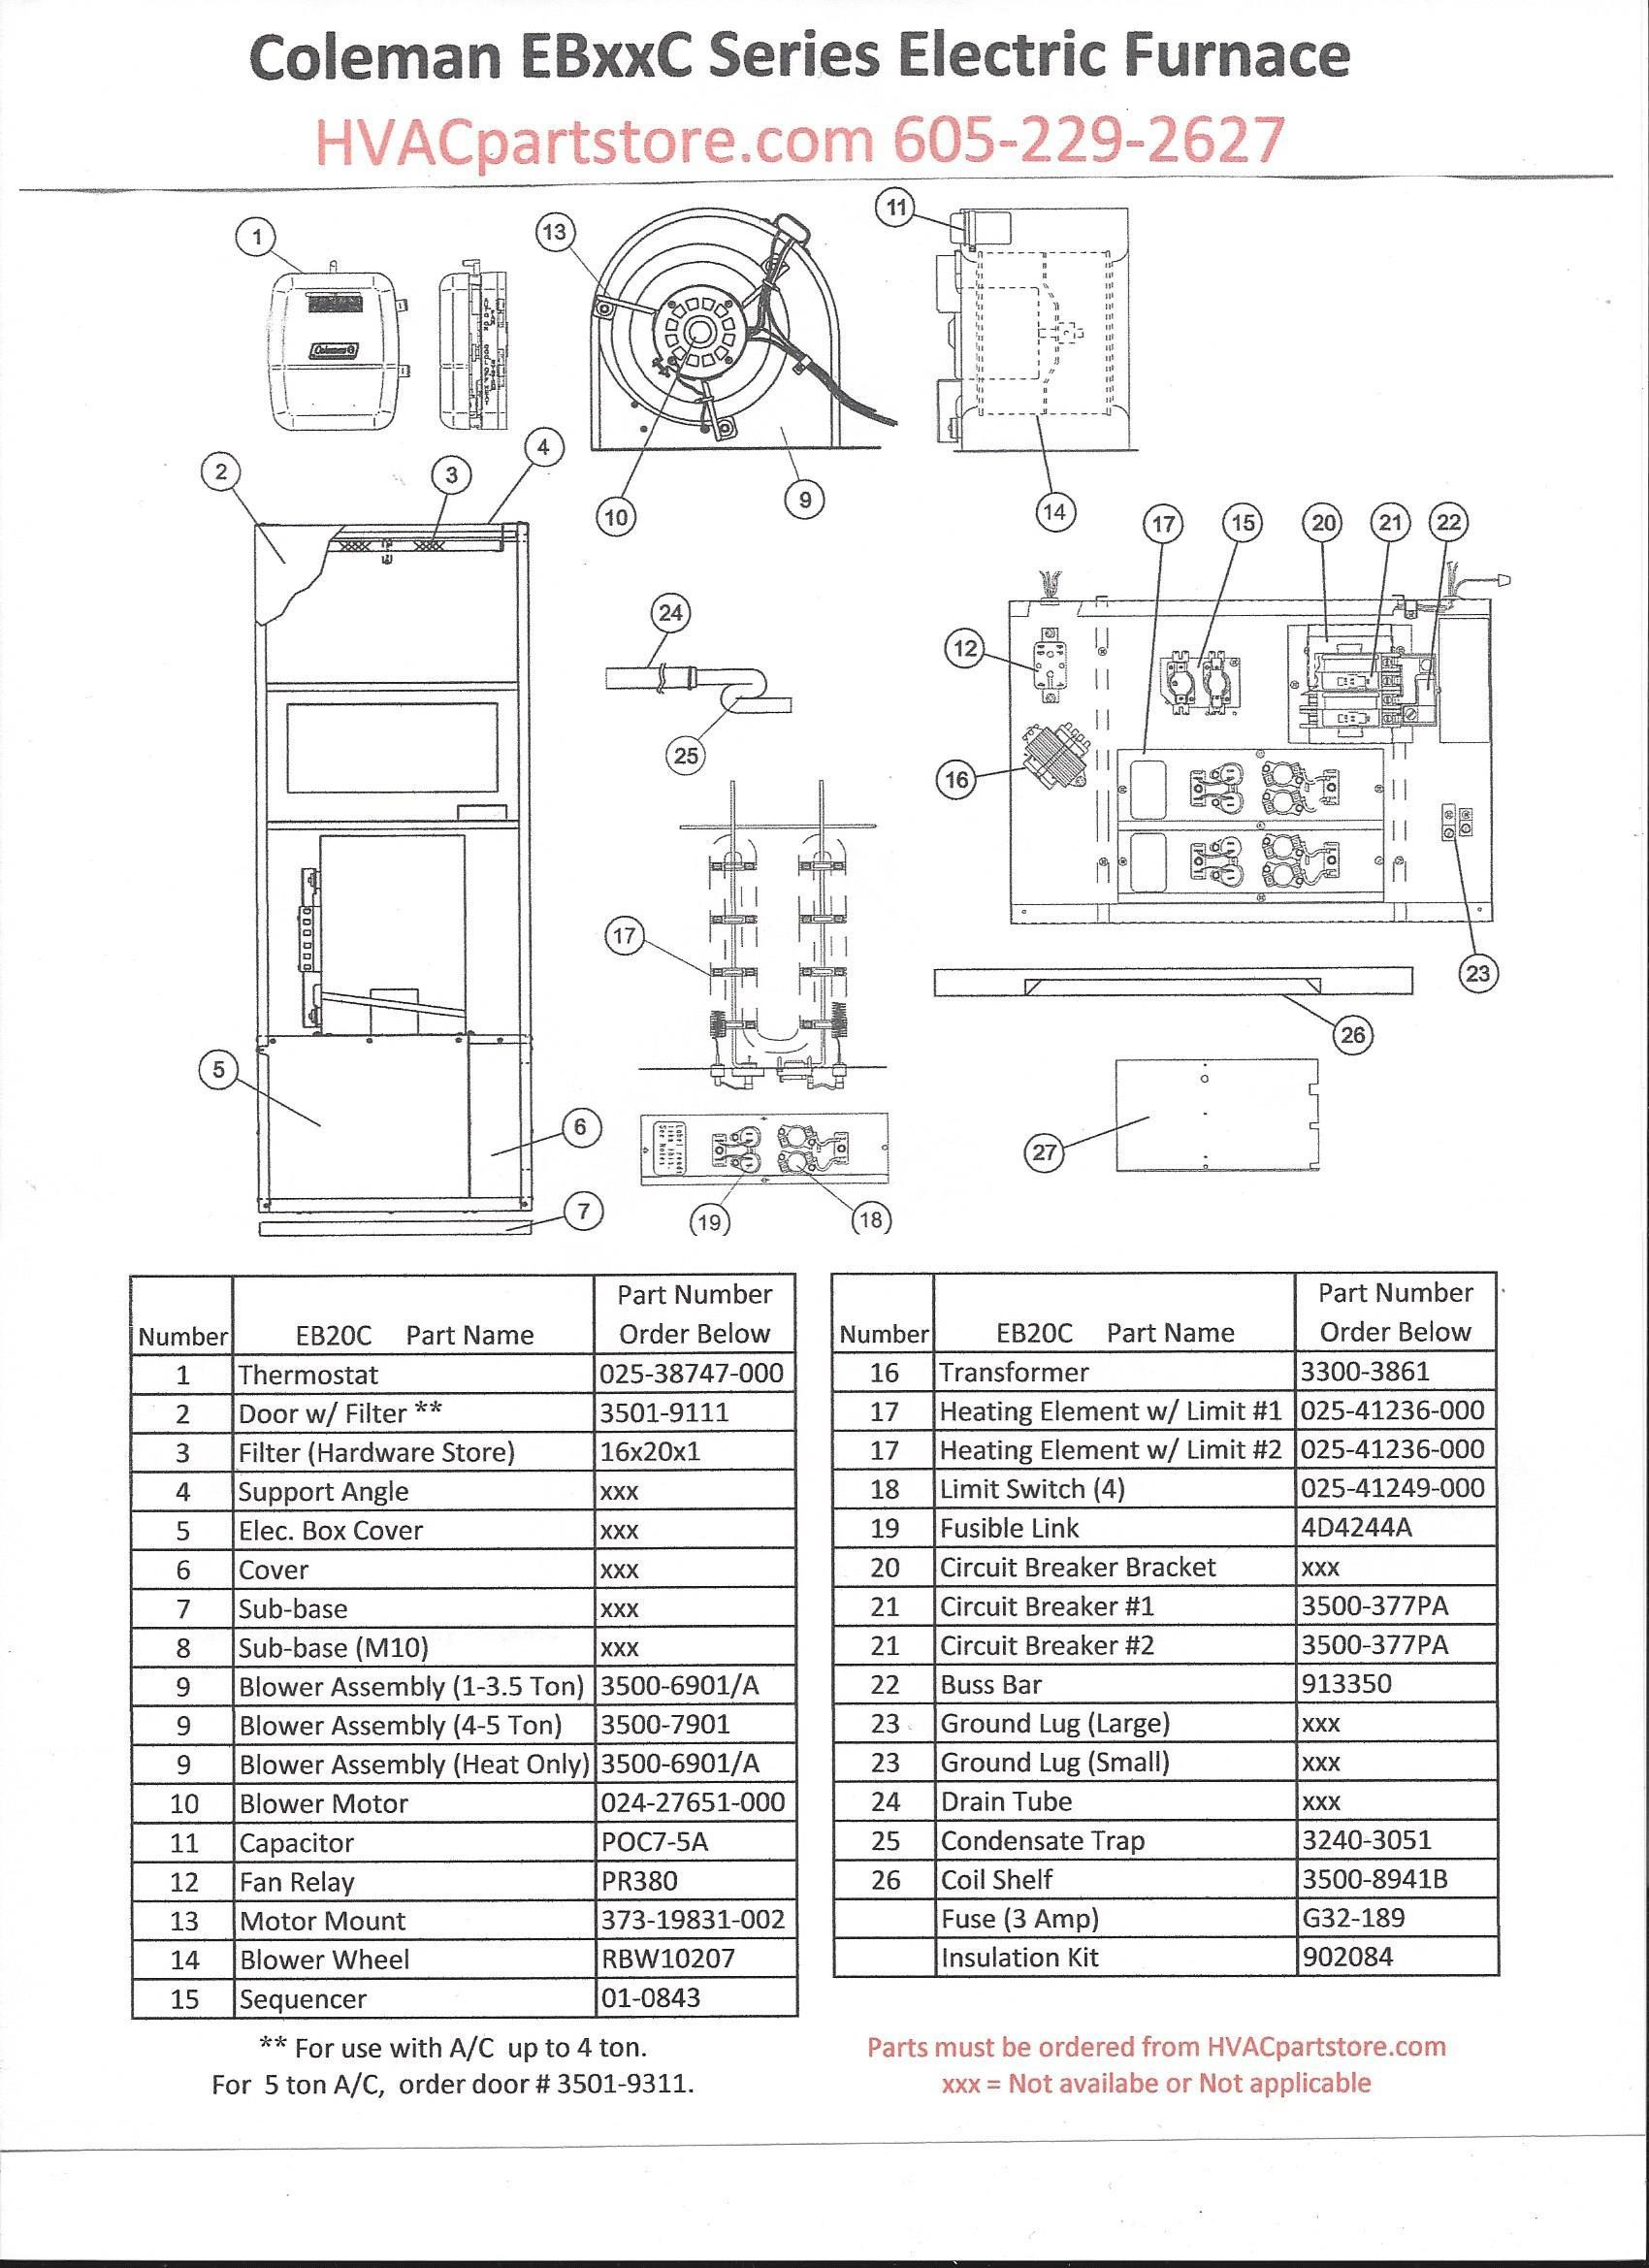 coleman electric furnaces new wiring diagram image rh mainetreasurechest com GE Furnace Wiring Diagram GE Furnace Wiring Diagram